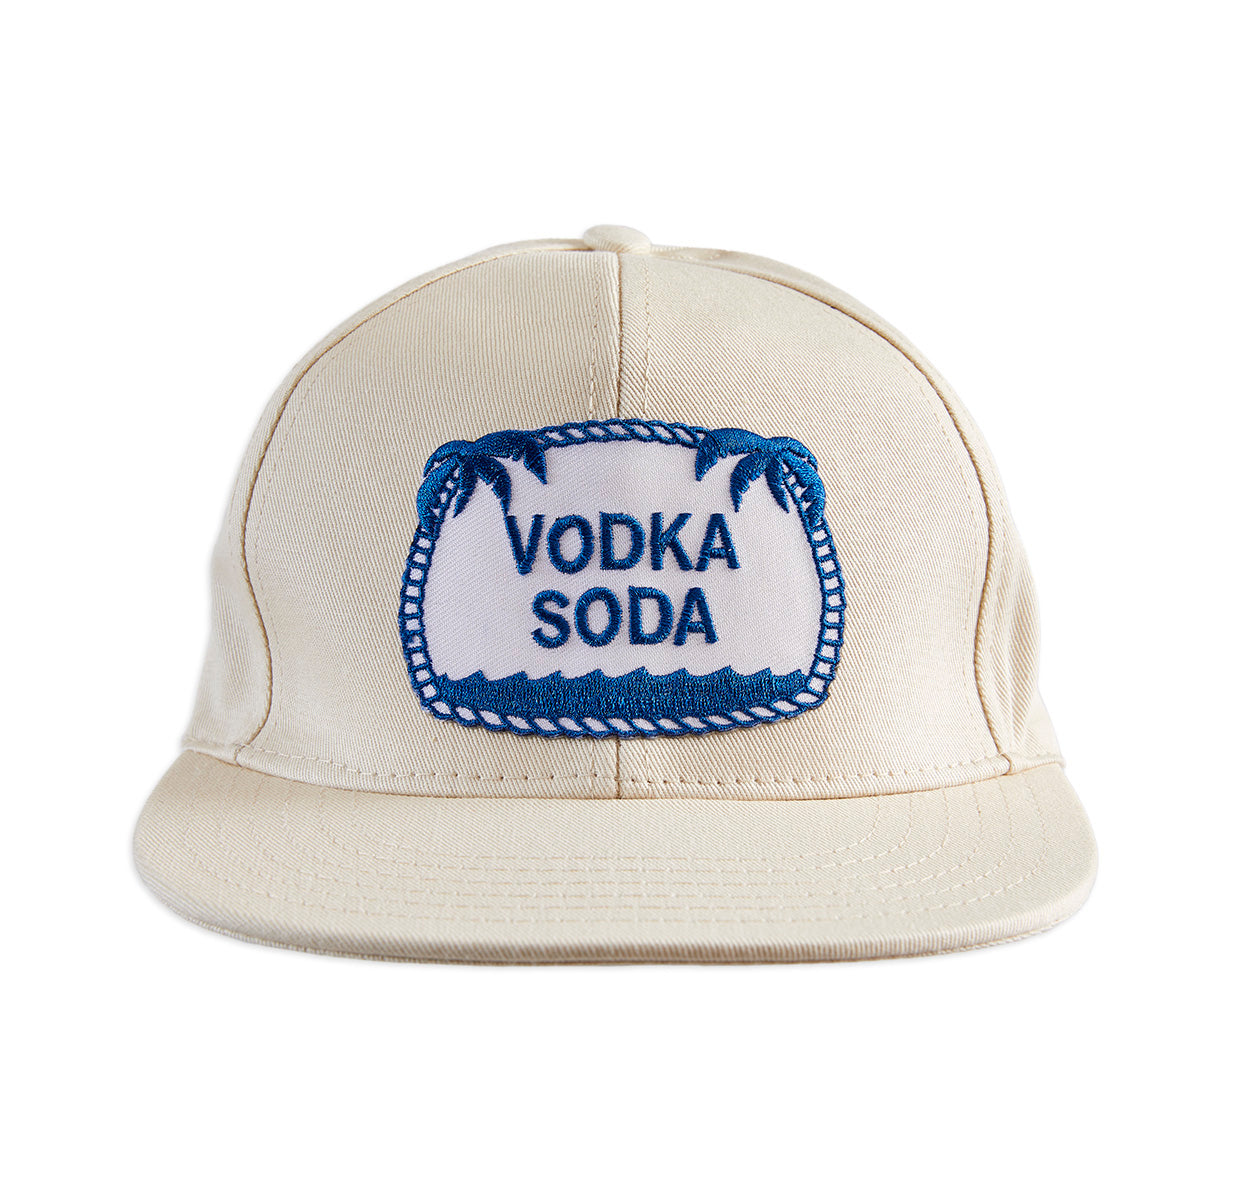 Vodka Soda ball cap